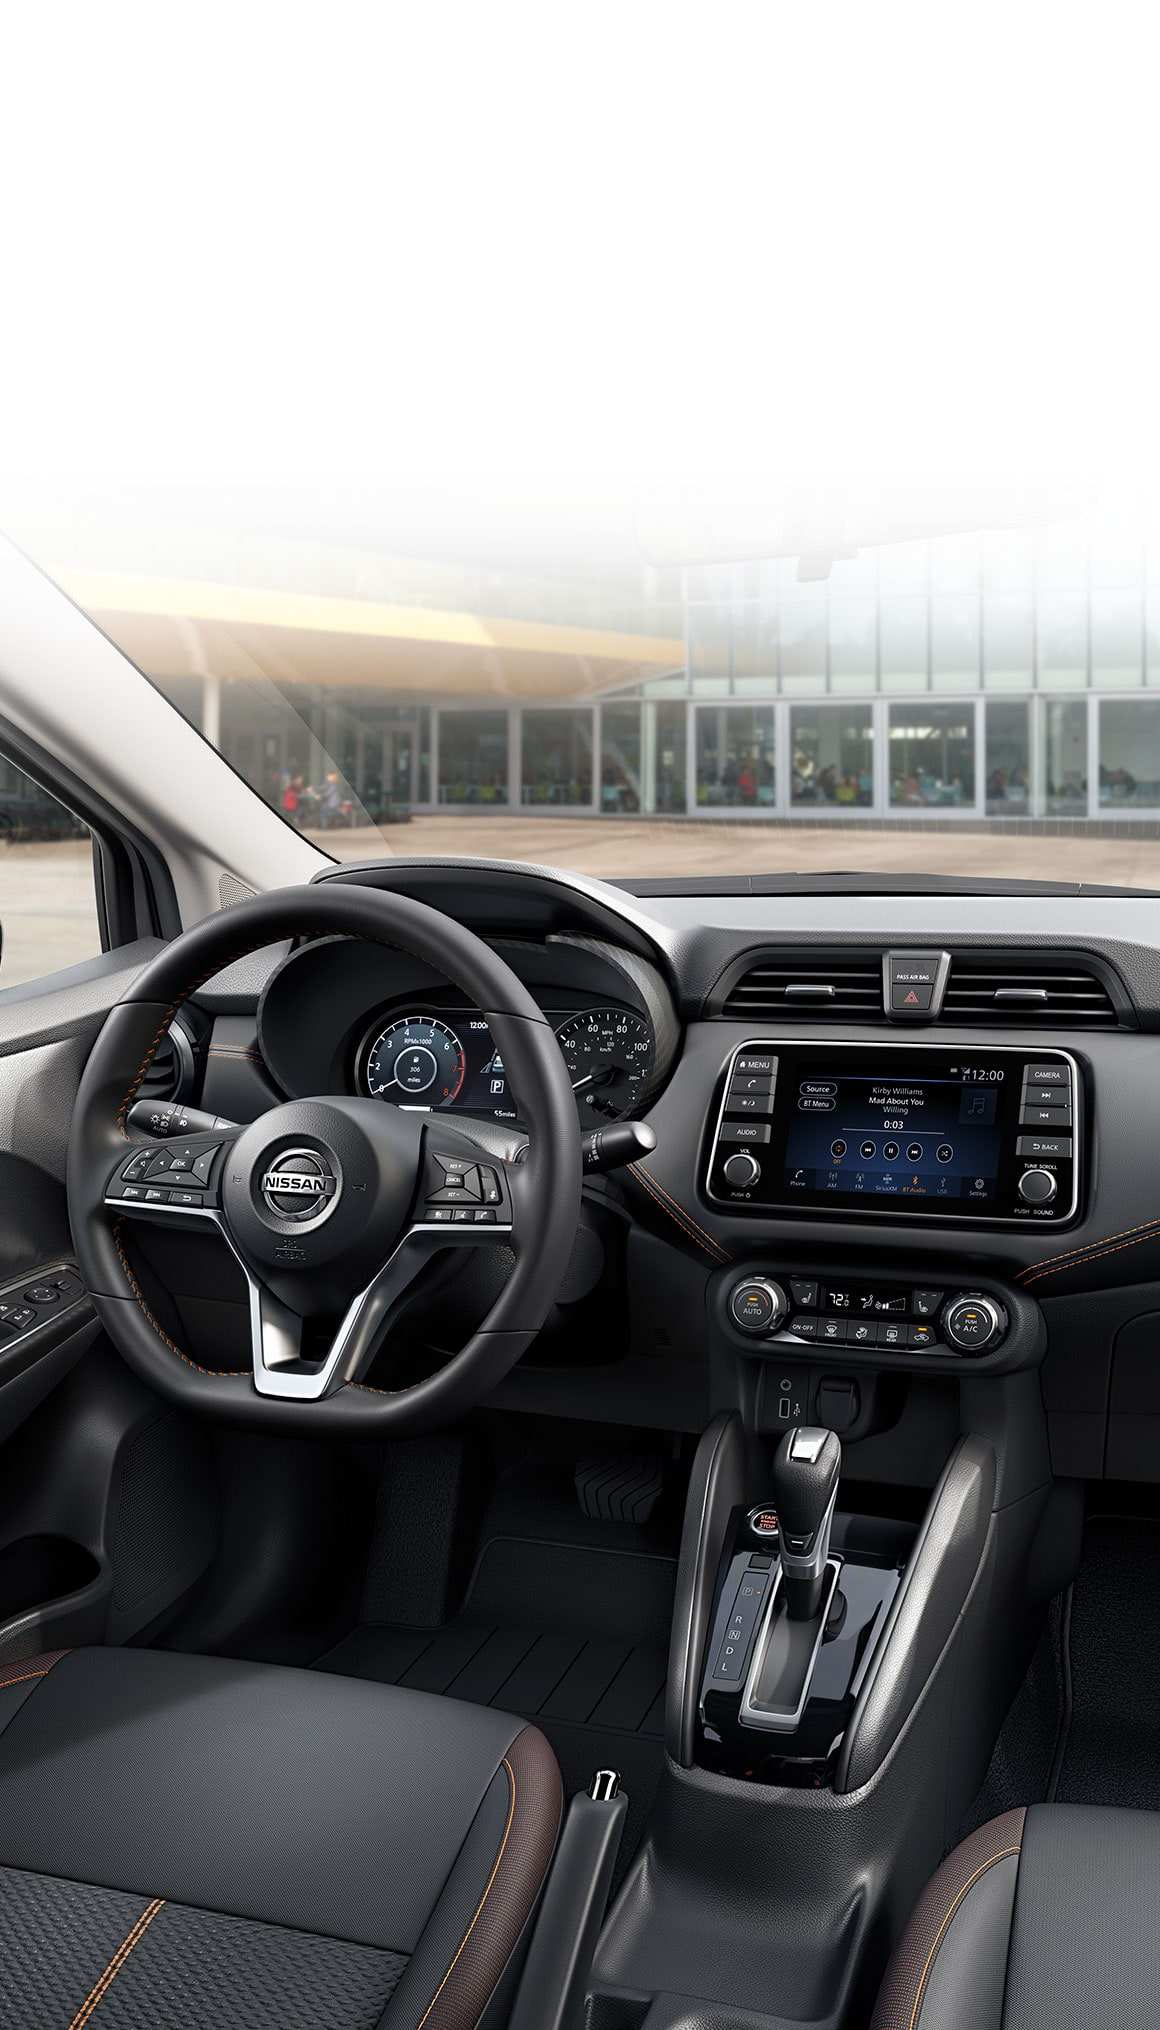 16 New Nissan Versa 2020 Price Pictures with Nissan Versa 2020 Price